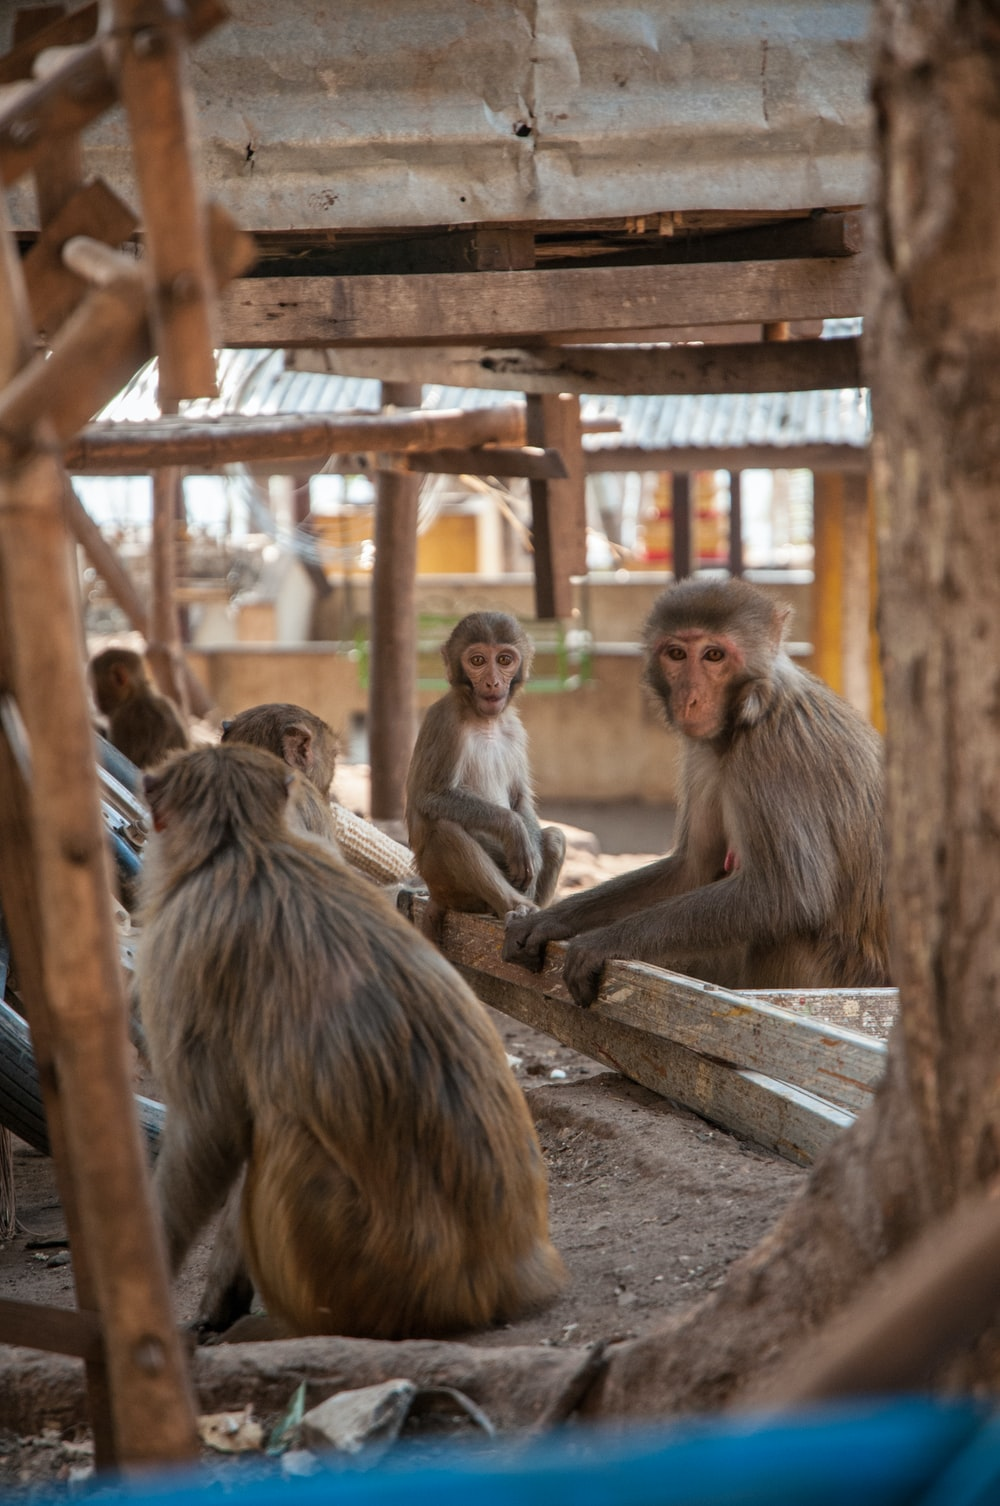 monkey sitting on brown wooden bench during daytime